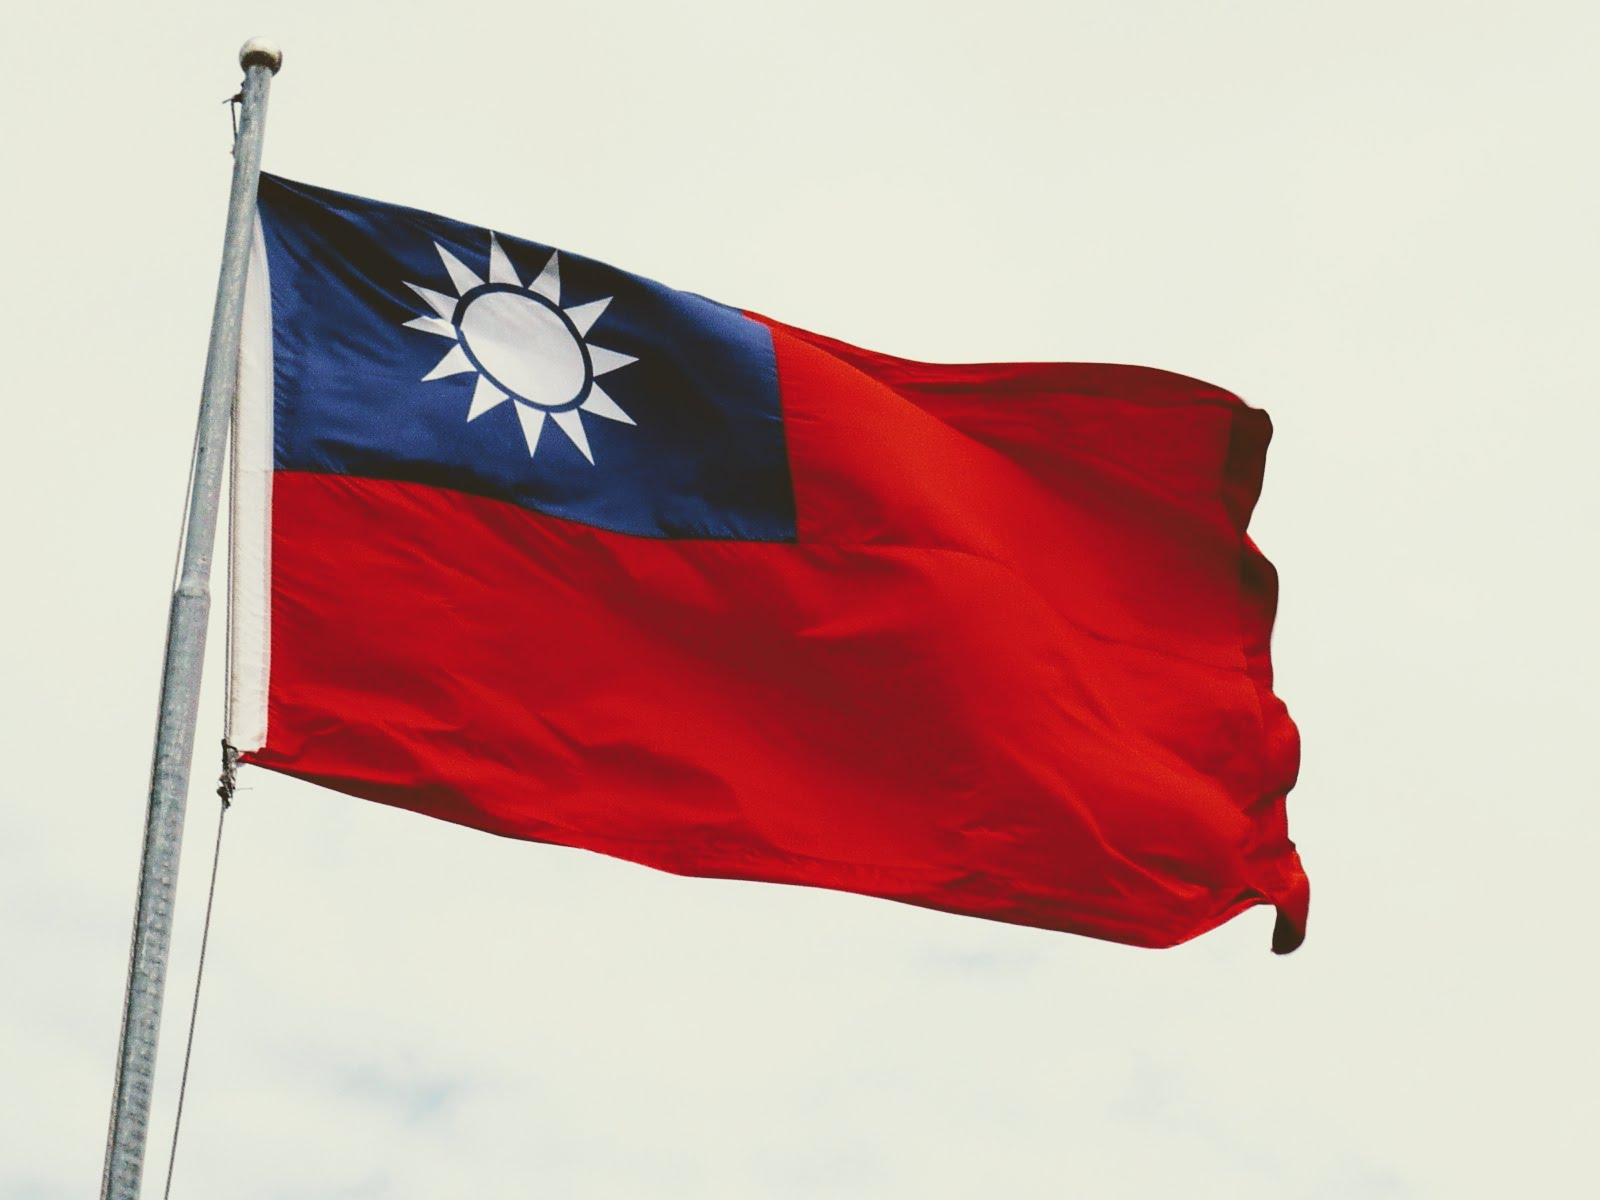 The mysterious removal of the Taiwan flag on U.S. websites despite inquiry continues.